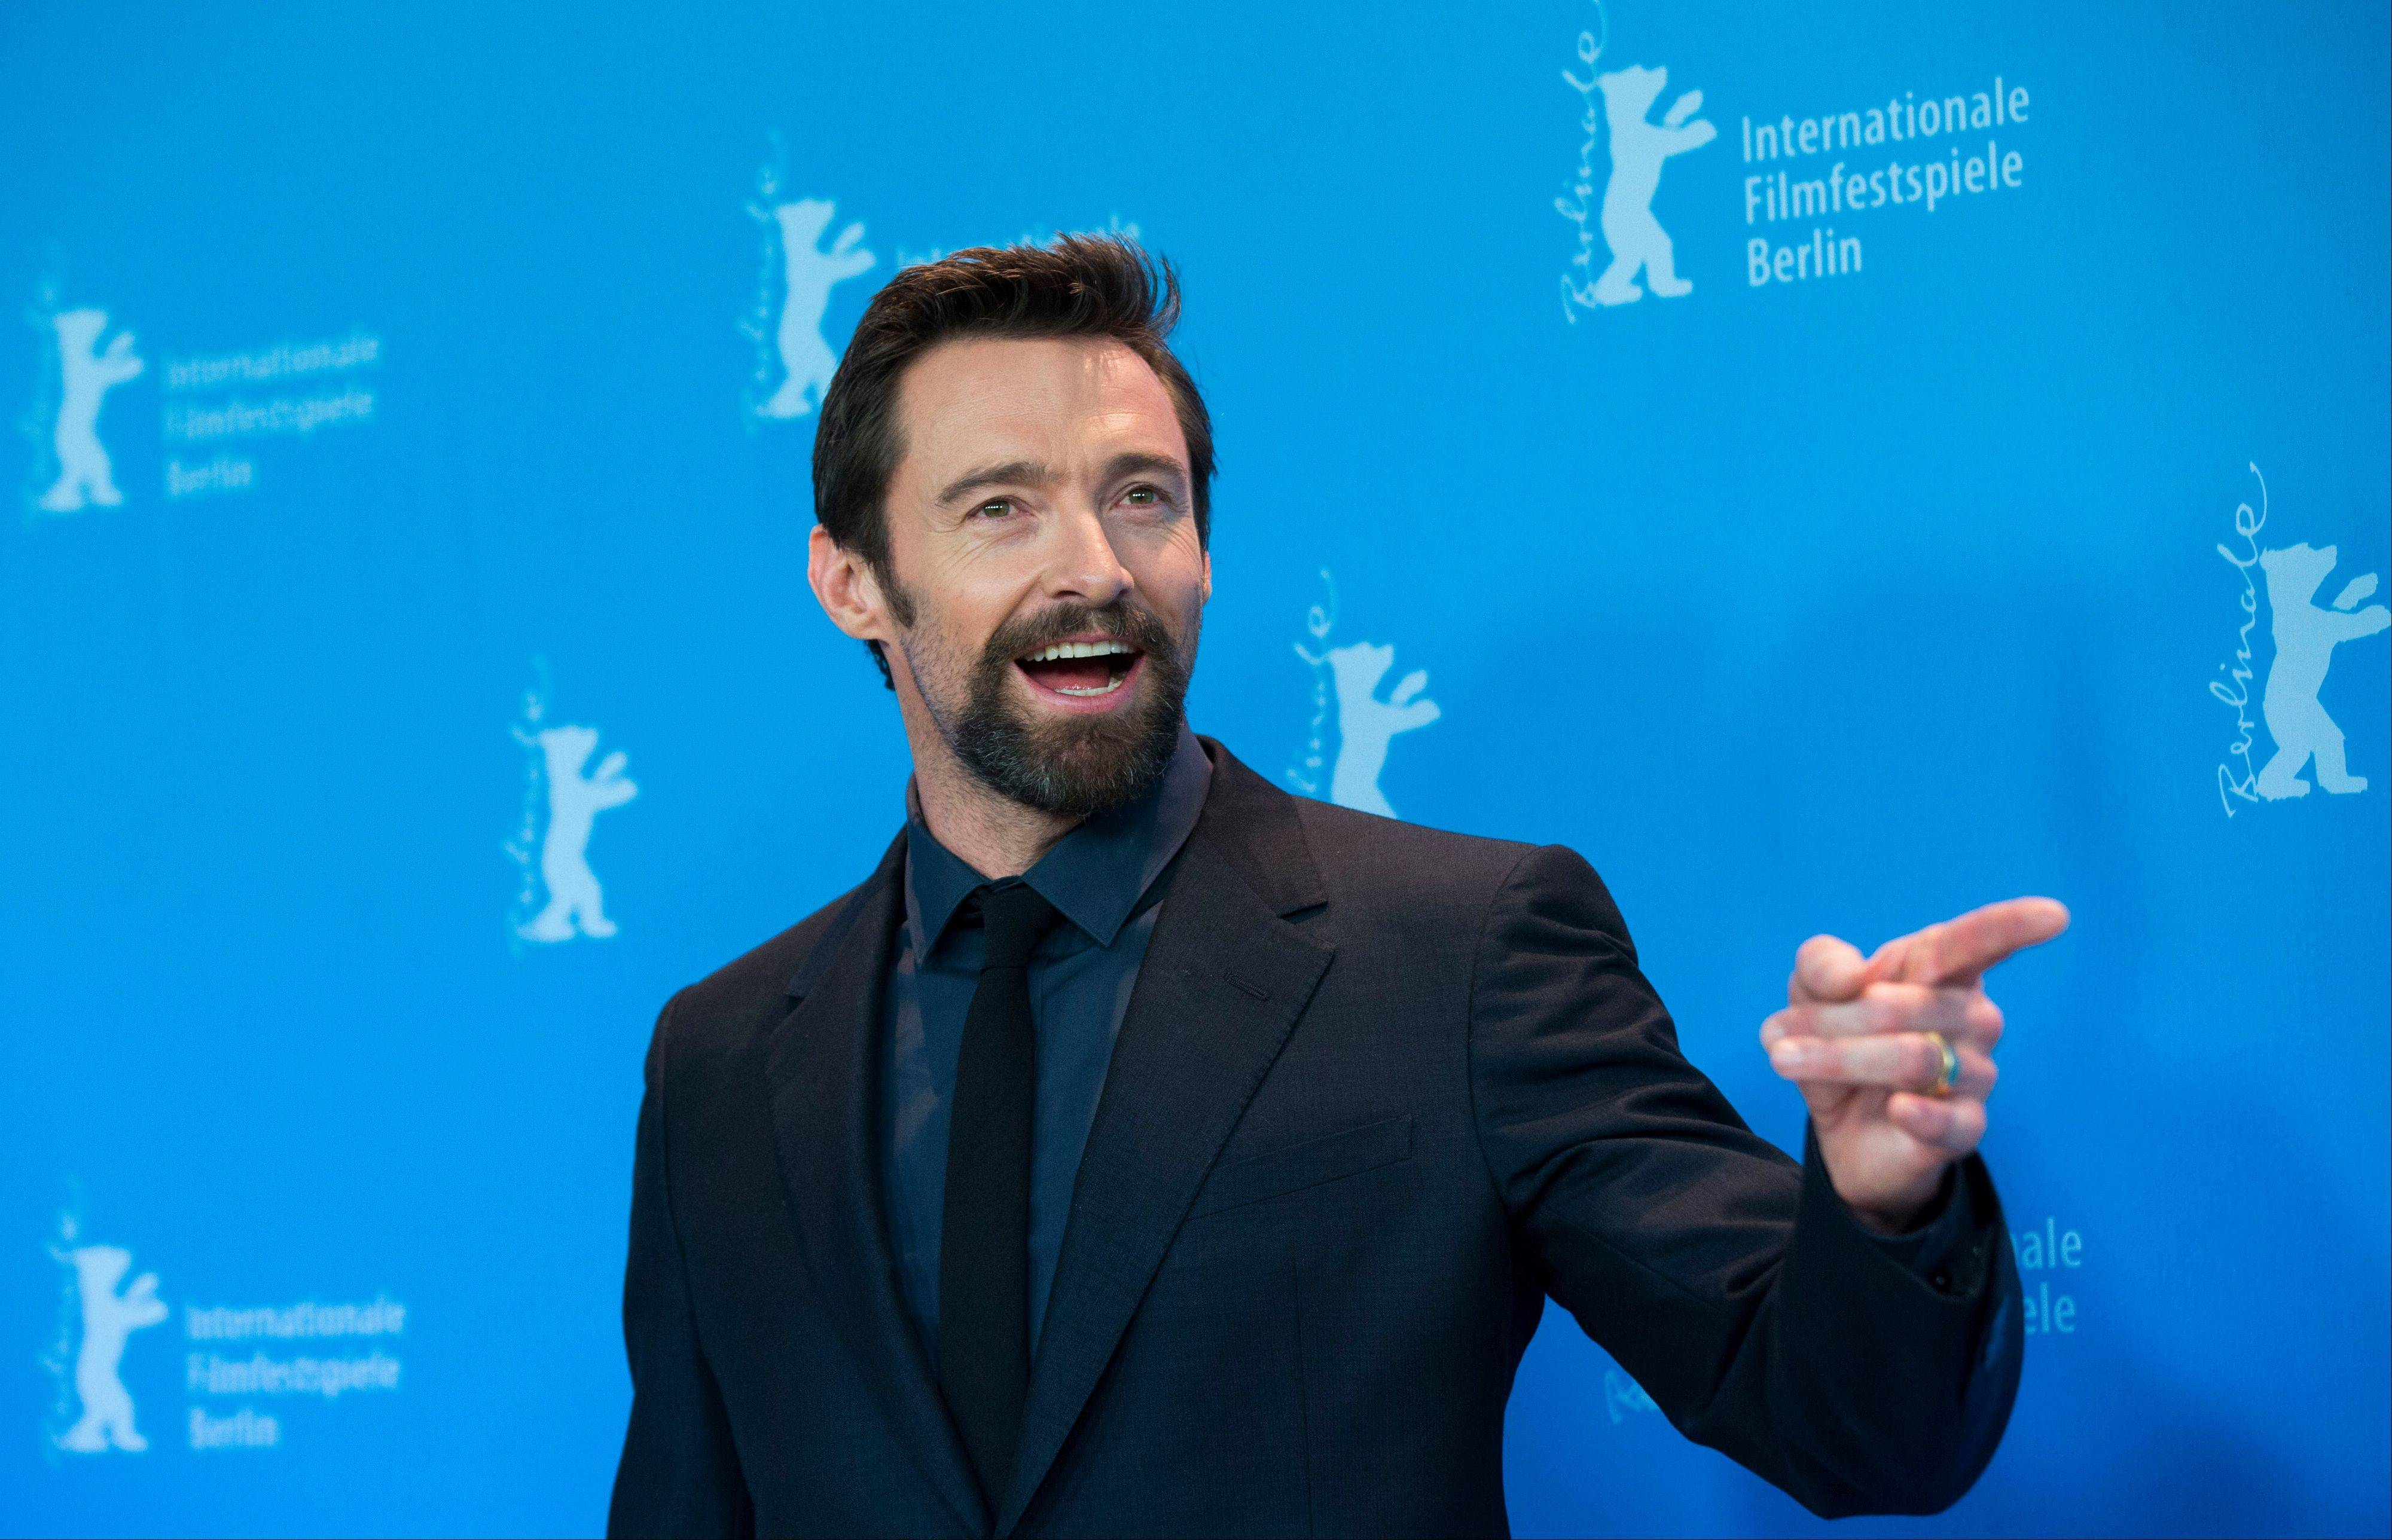 In this Saturday, Feb. 9, 2013 file photo, actor Hugh Jackman poses at the photo call of the film Les Miserables at the 63rd edition of the Berlinale, International Film Festival in Berlin. Police say 47-year-old Kathleen Thurston is charged with stalking Jackman after approaching him, crying and shouting, and throwing a razor at the Australian actor while he was working out at a gym in New York, on Saturday, April 13, 2013.